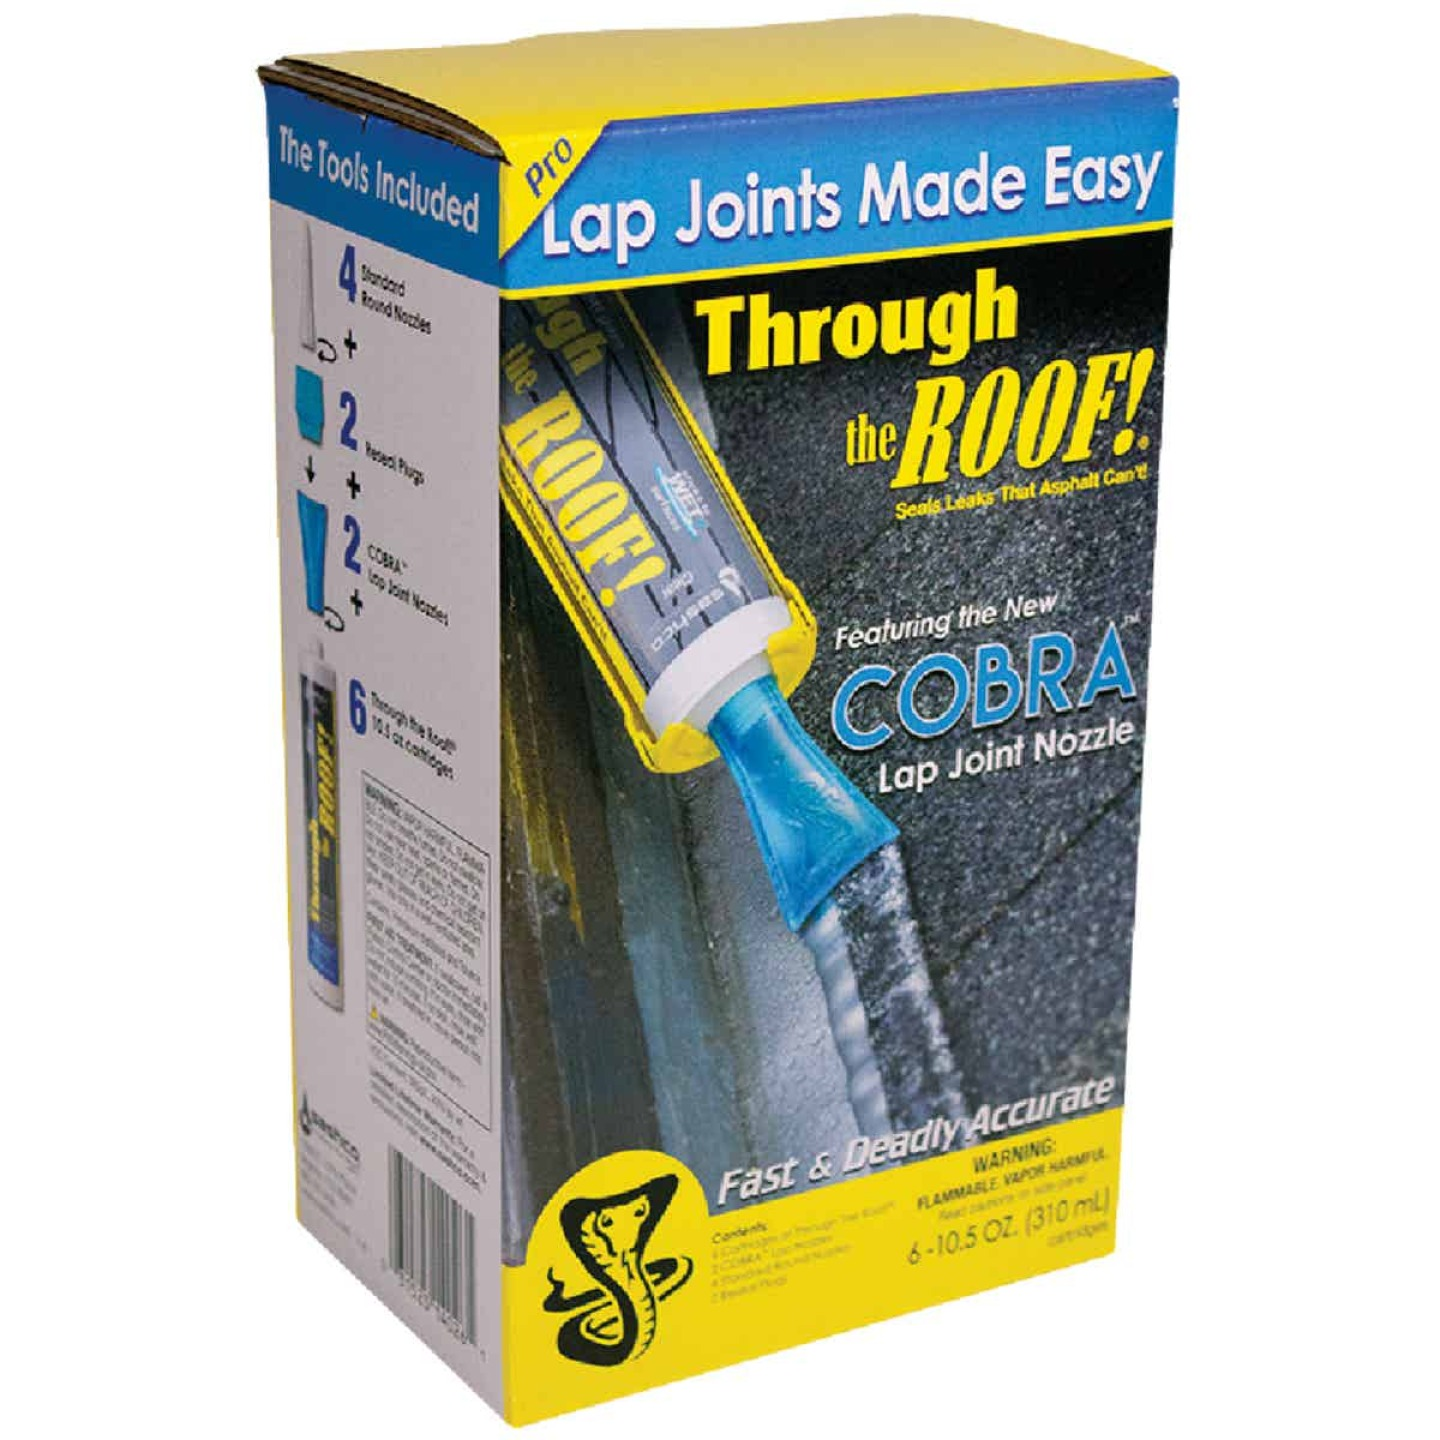 Cobra Lap Joint Nozzle System with Through The Roof! Sealant Image 1